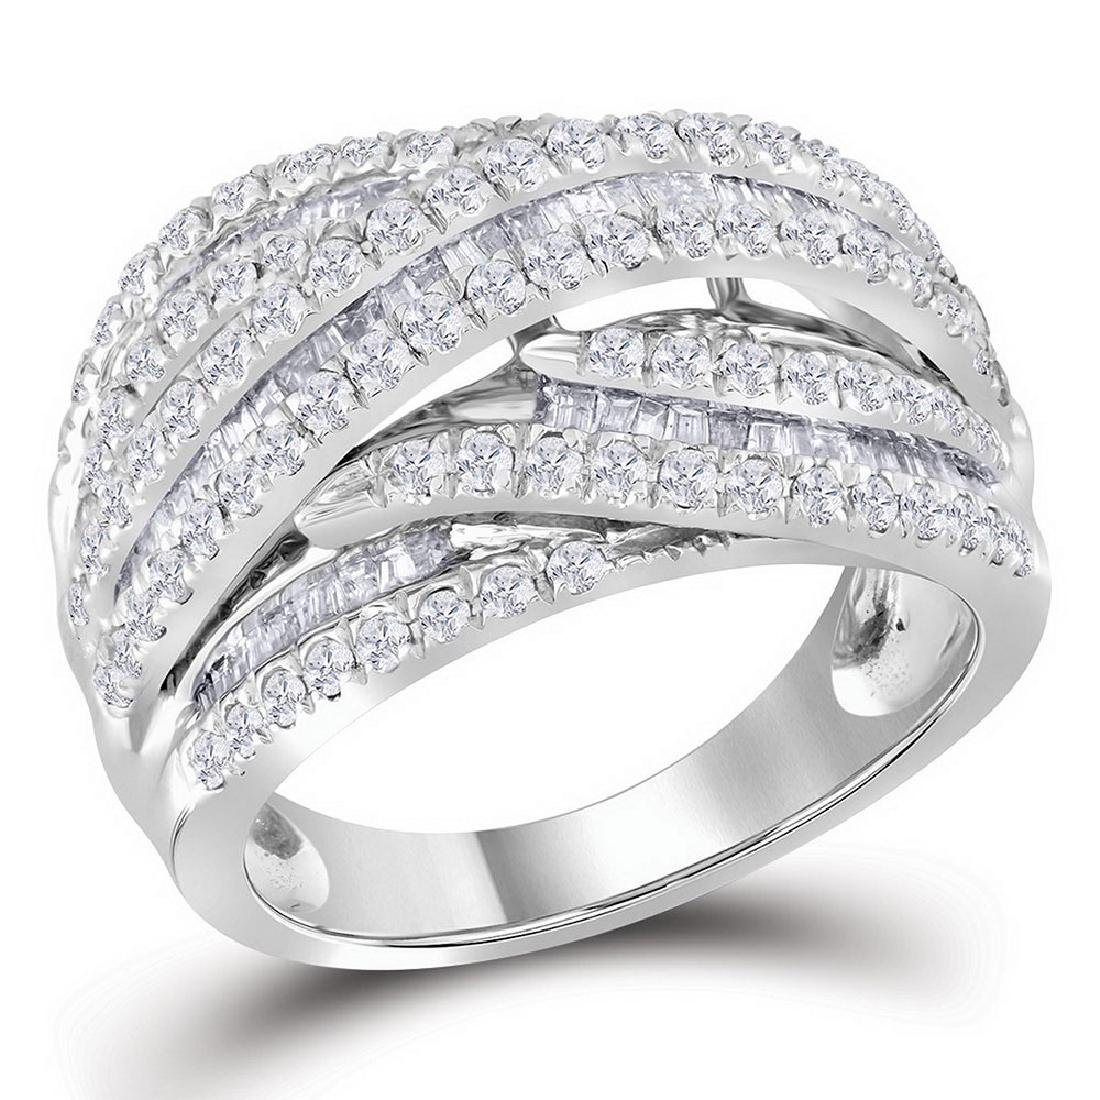 10kt White Gold Womens Baguette Round Diamond Crossover